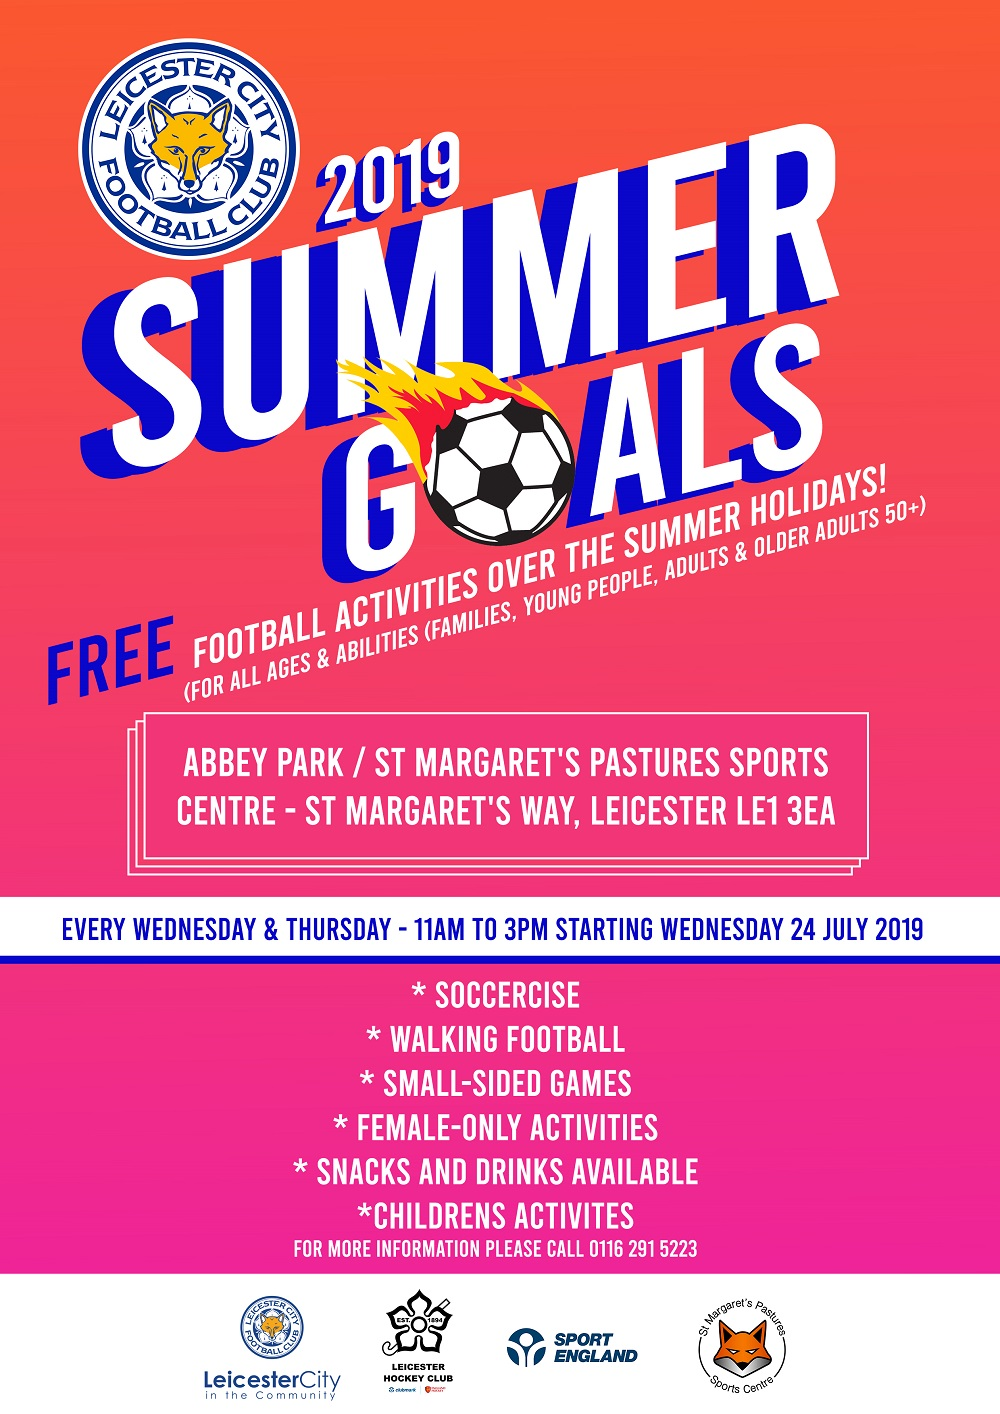 Summer Goals 2019 Abbey Park St Margarets Pastures Sports Centre